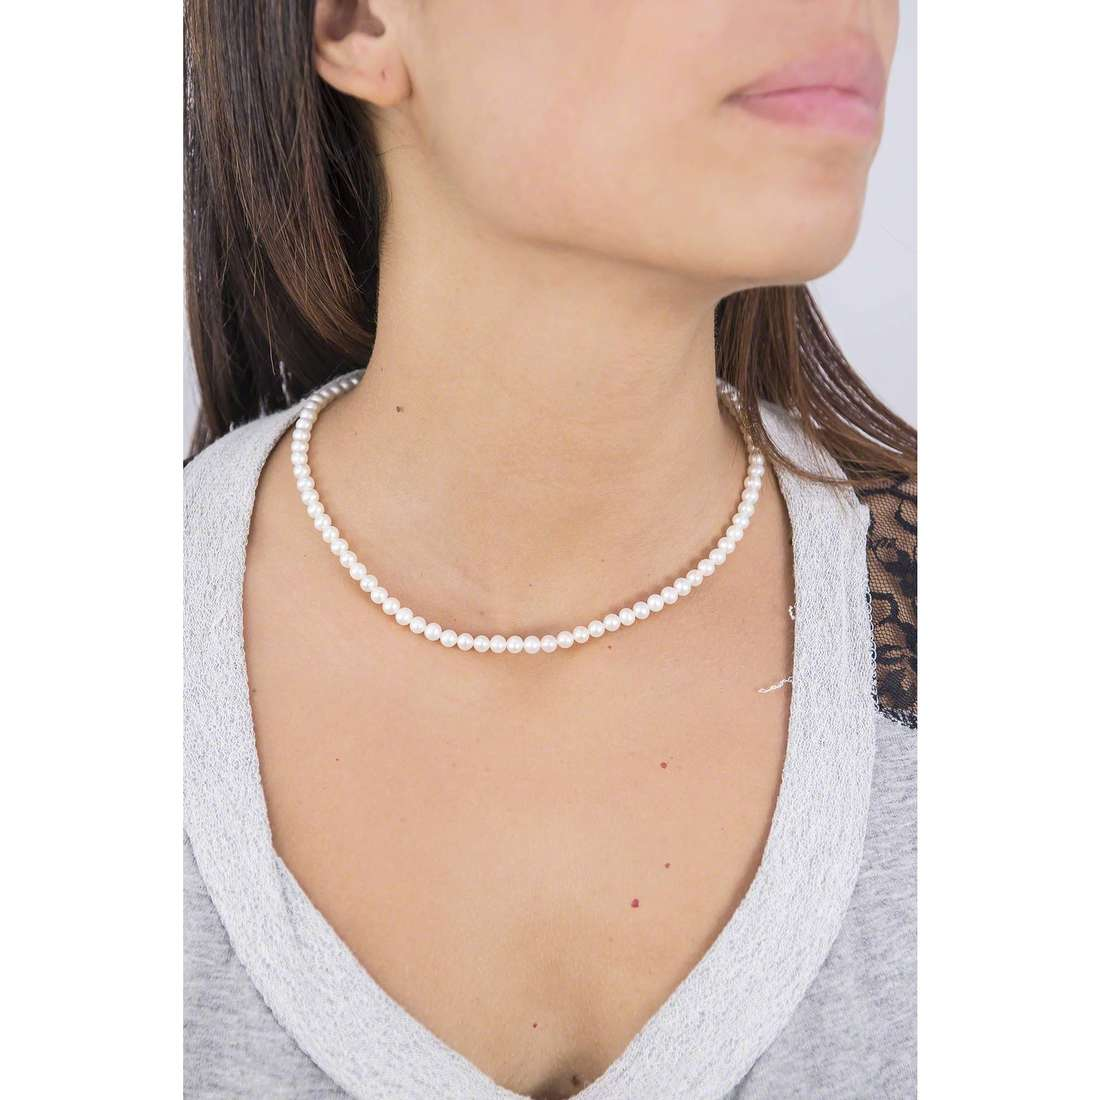 Comete necklaces Easy Basic woman FWQ 102 AM indosso